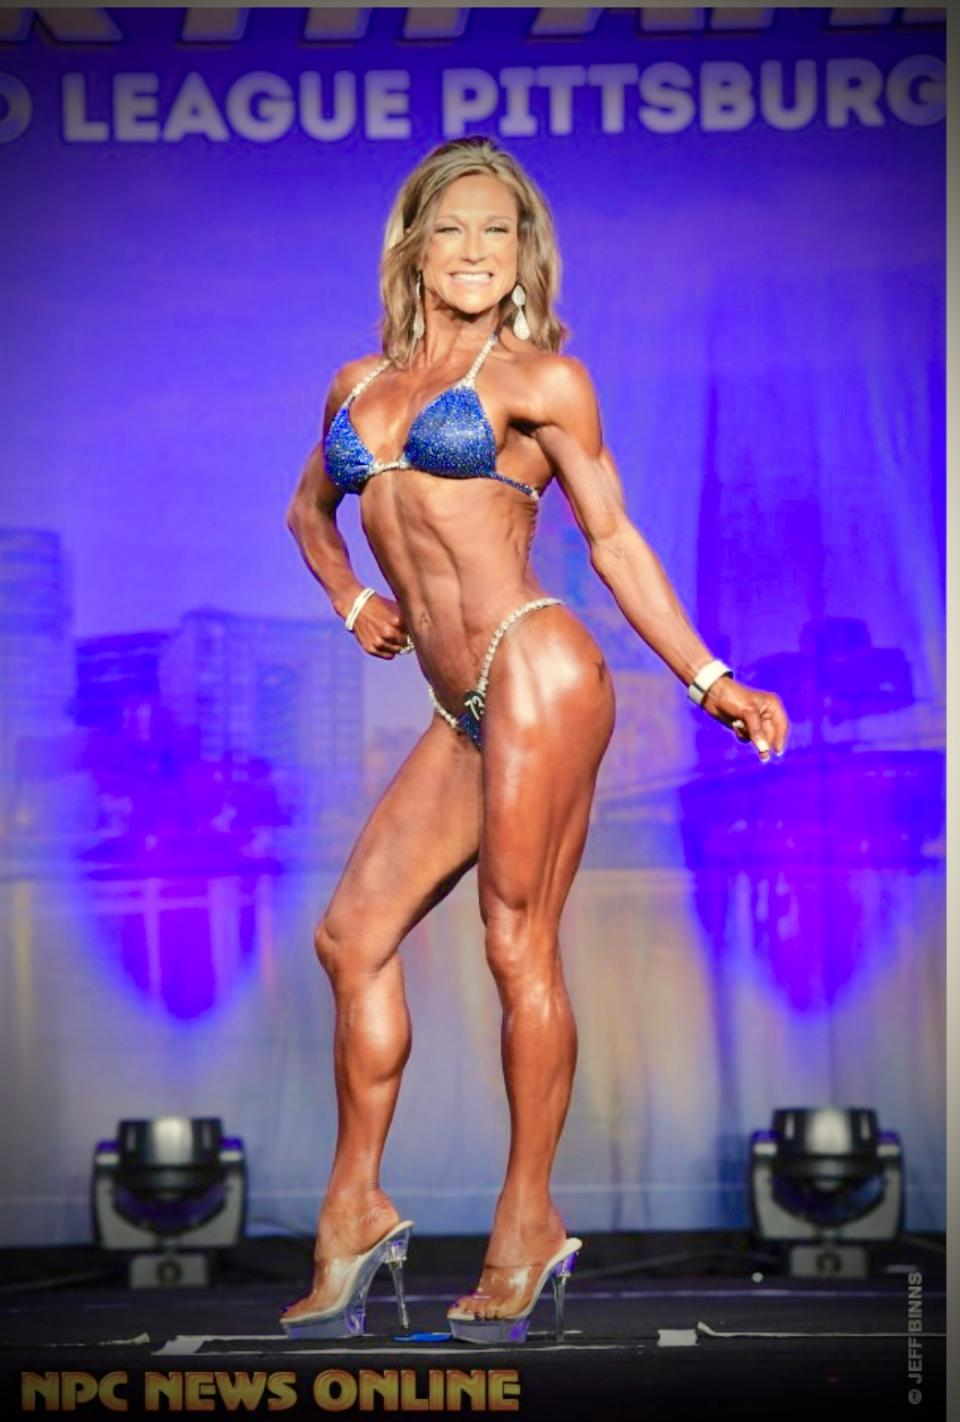 Shelly Paton in a Merry Christine Bodywear competition bikini